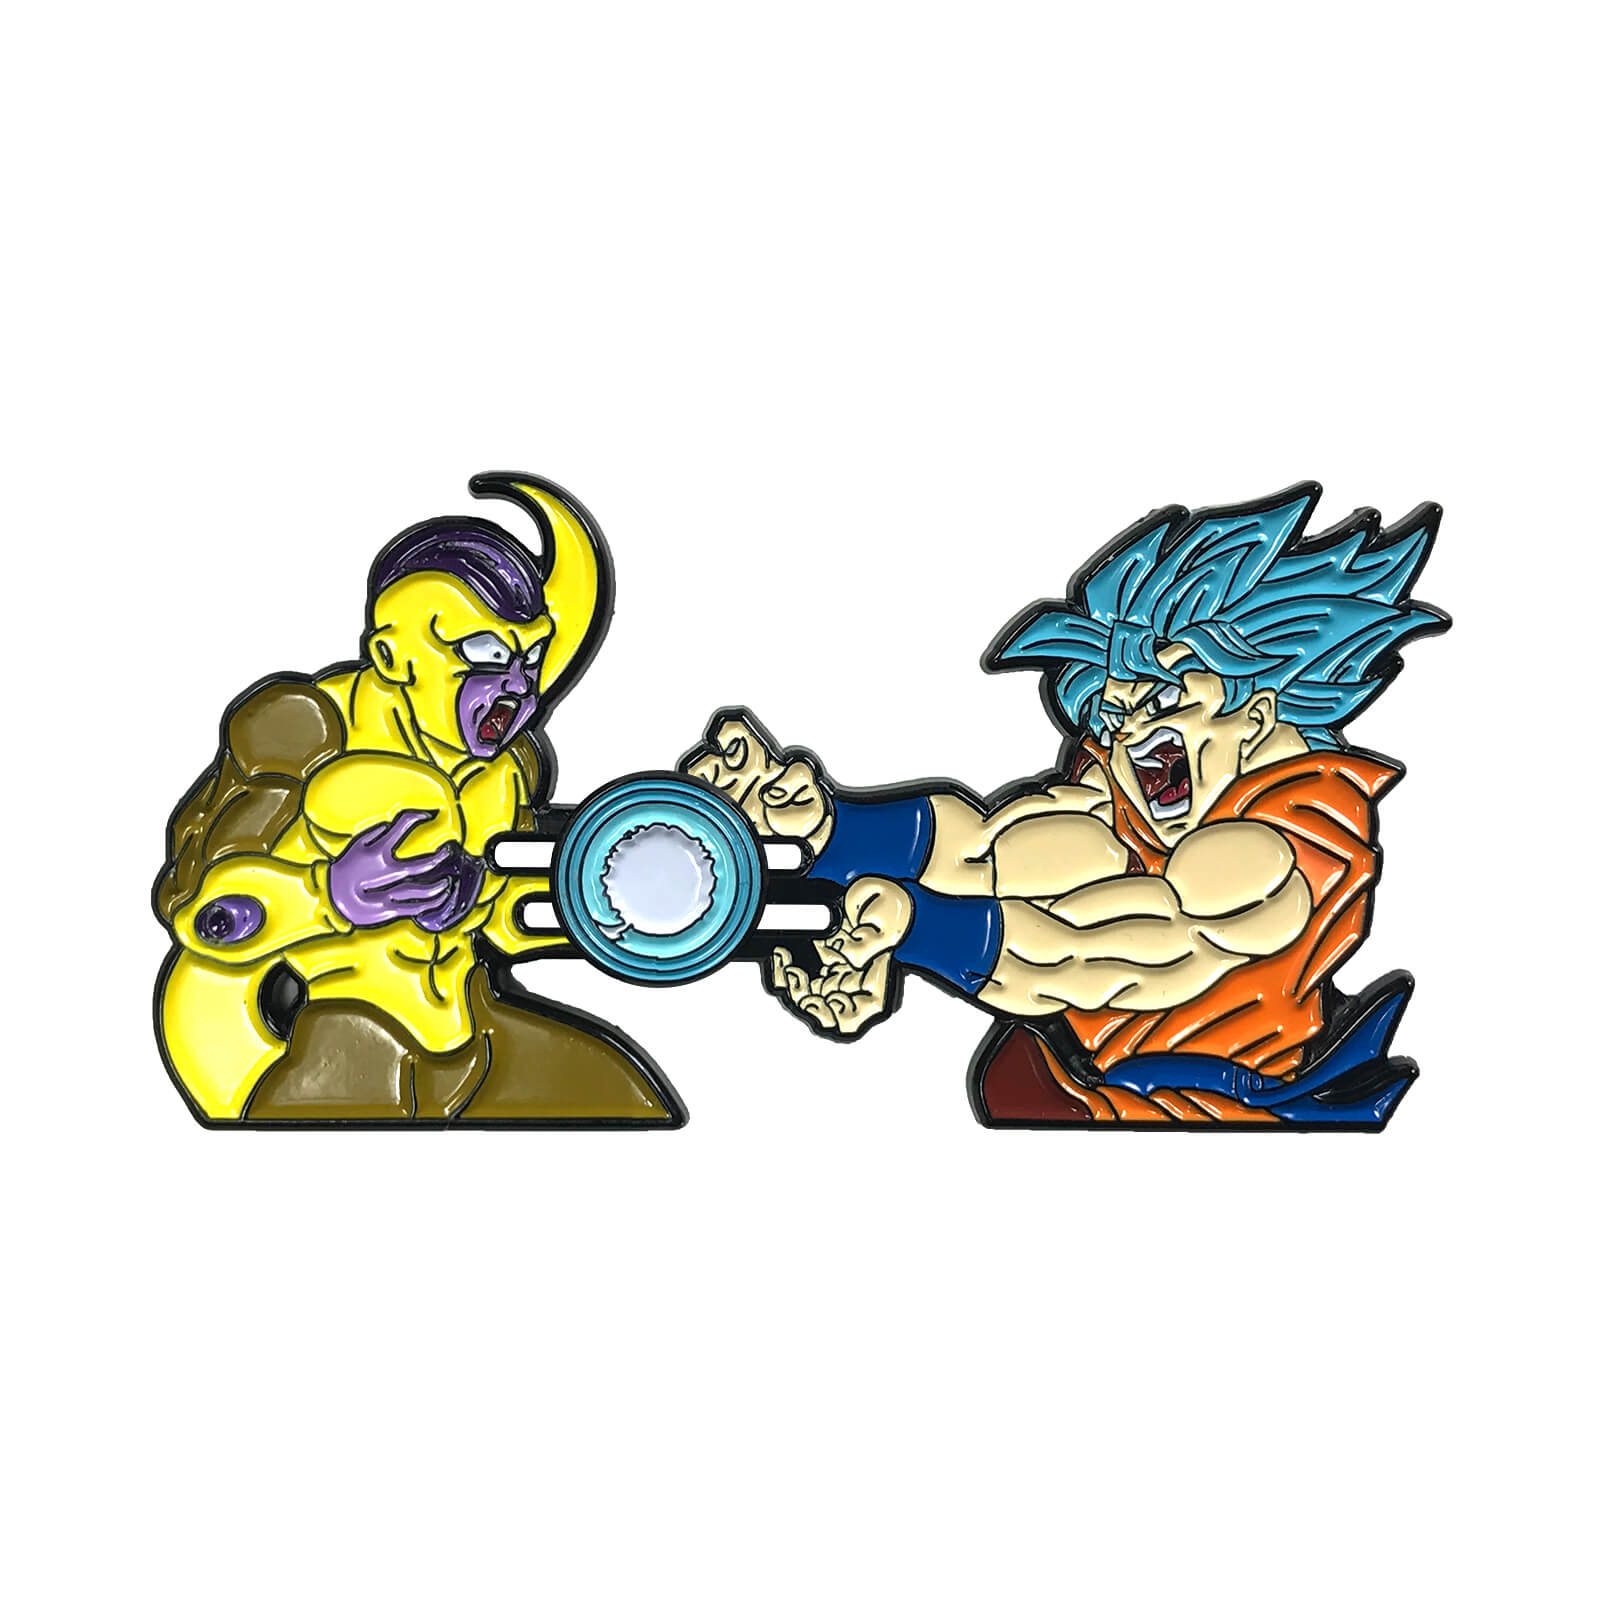 Goku vs Frieza Sliding Enamel Pin (2nd Ed.)